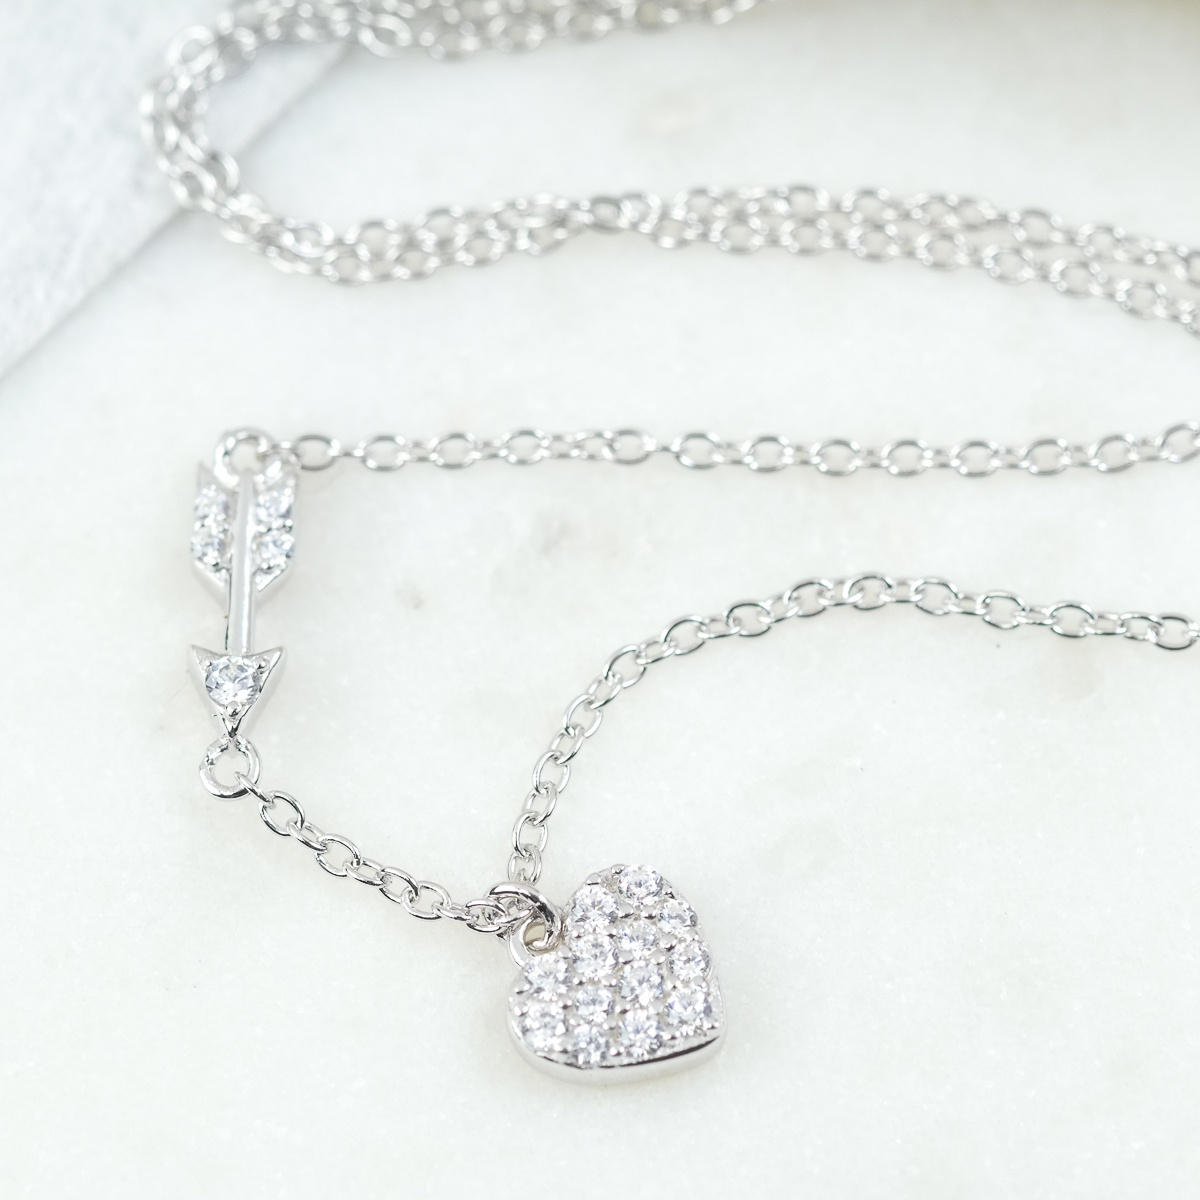 Sparkling Heart & Arrow Necklace – Sugarmango Ltd Pertaining To Latest Sparkling Arrow Necklaces (View 9 of 25)